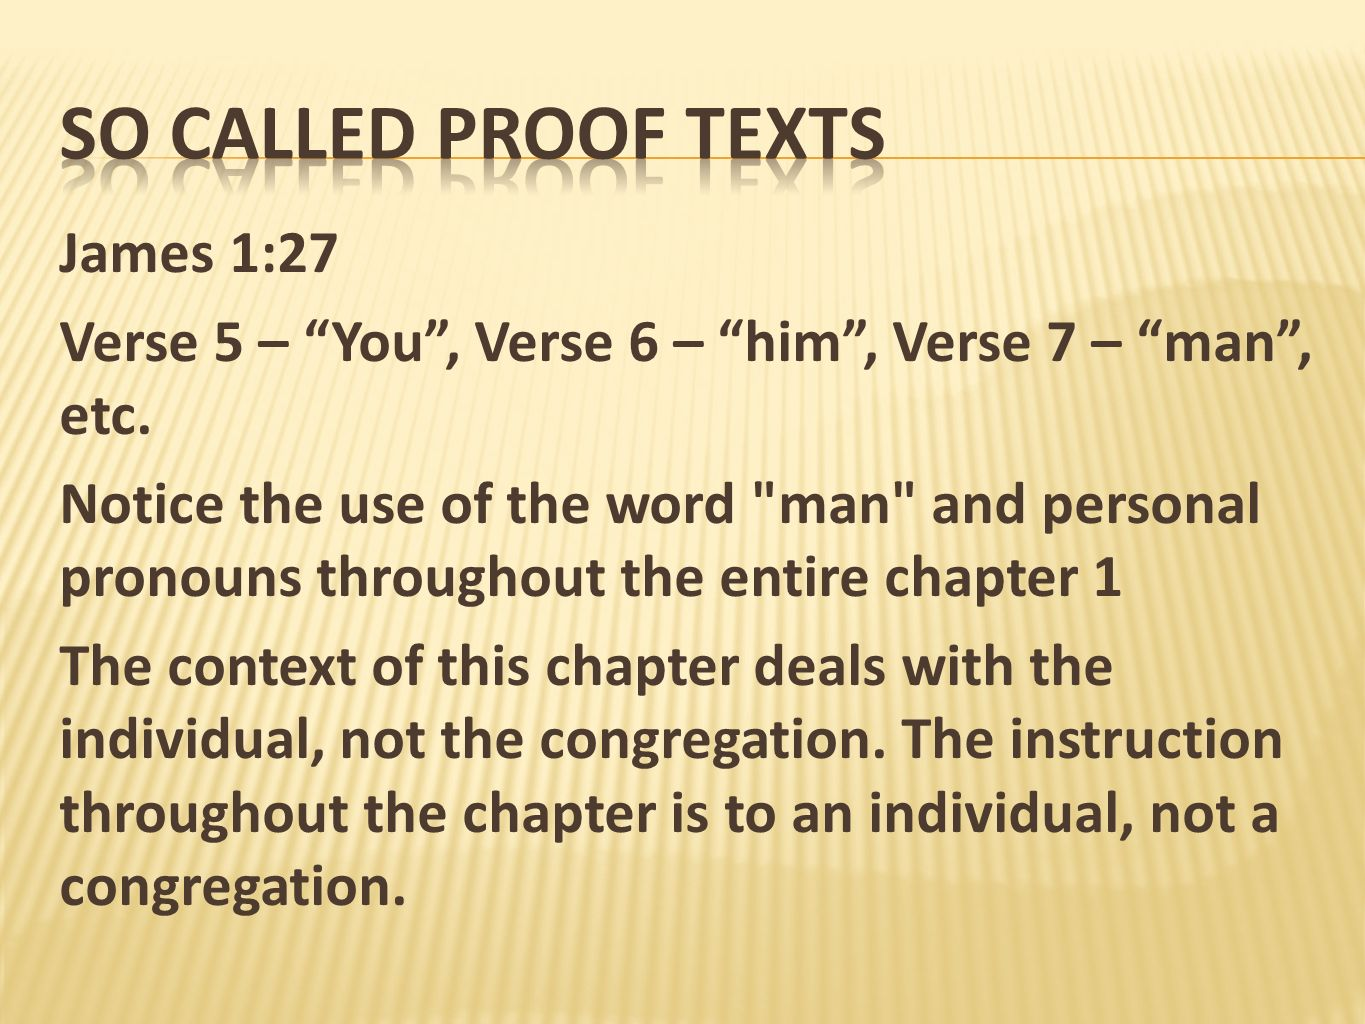 So called proof texts